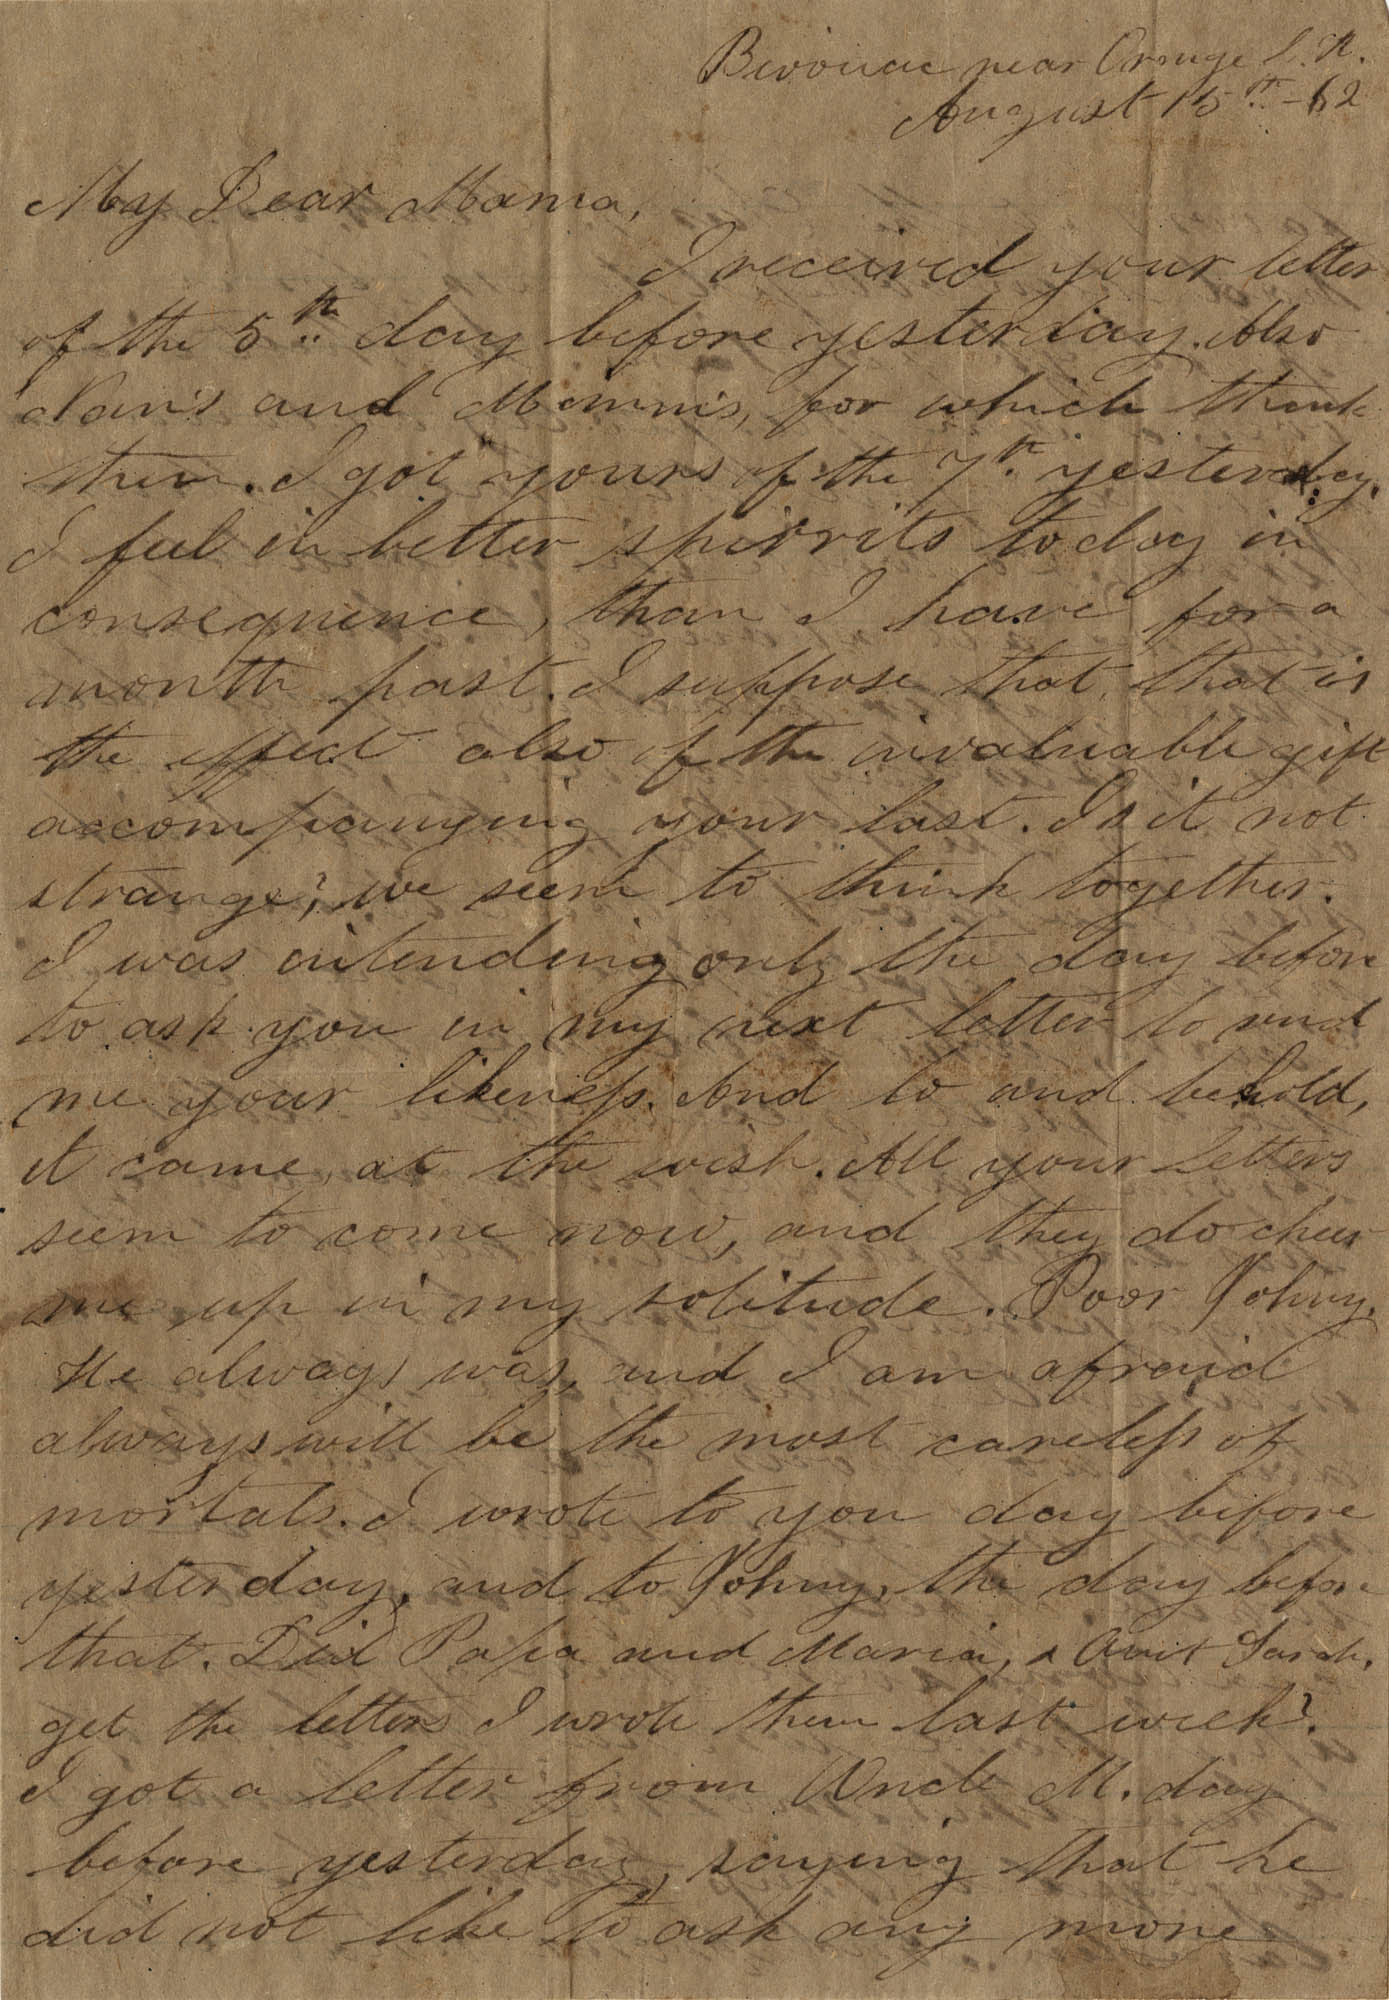 069. Willis Keith to Anna Bell Keith -- August 15, 1862